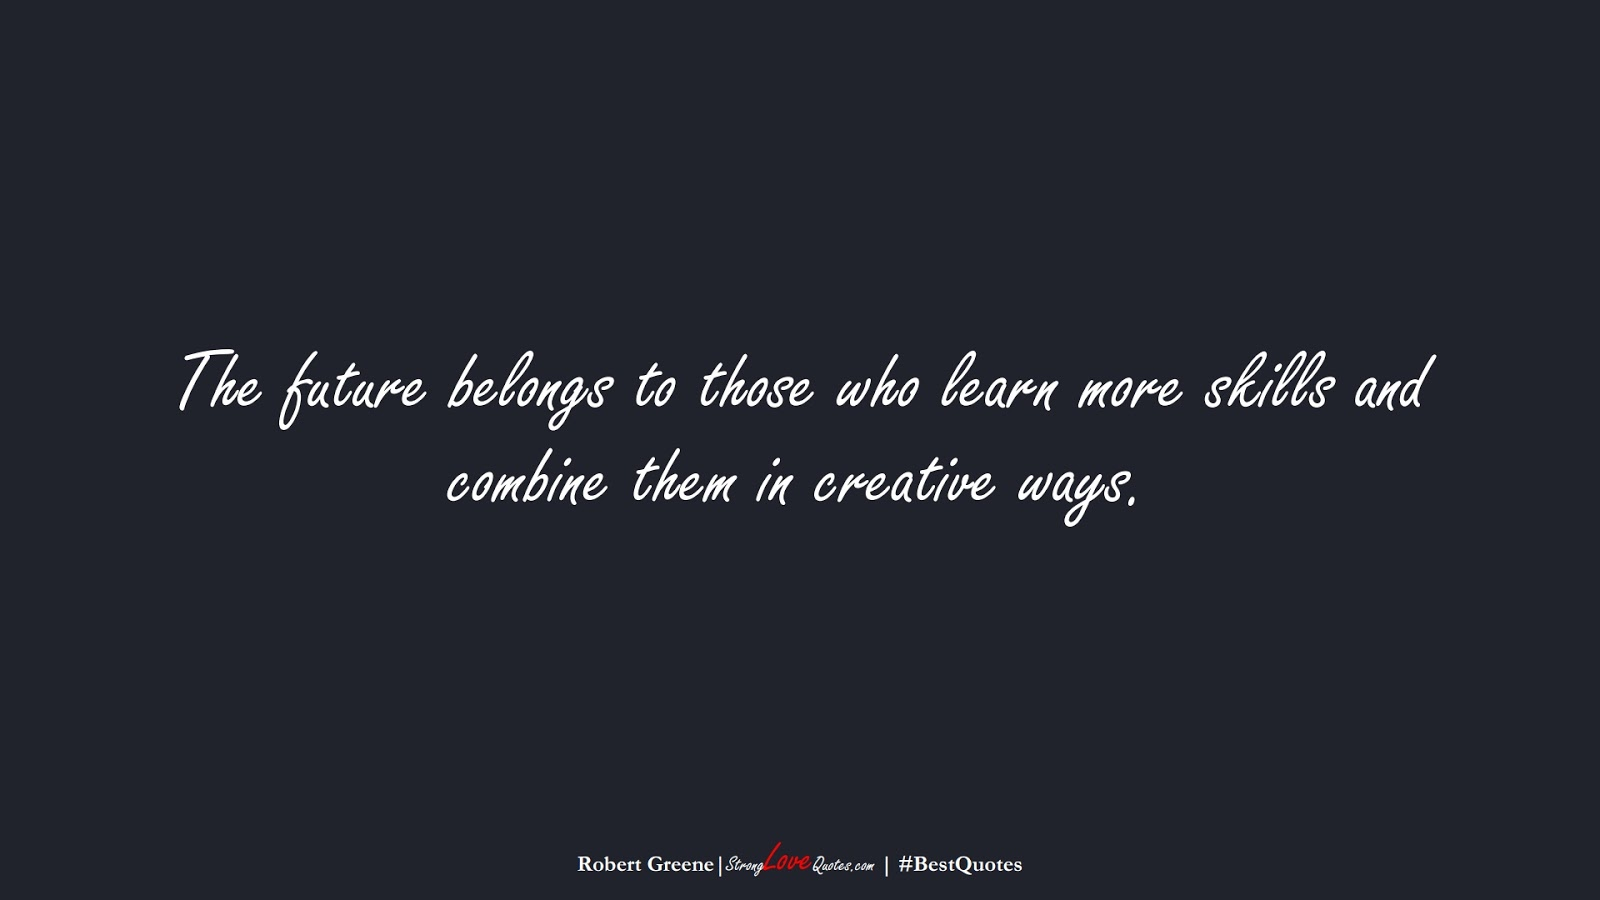 The future belongs to those who learn more skills and combine them in creative ways. (Robert Greene);  #BestQuotes